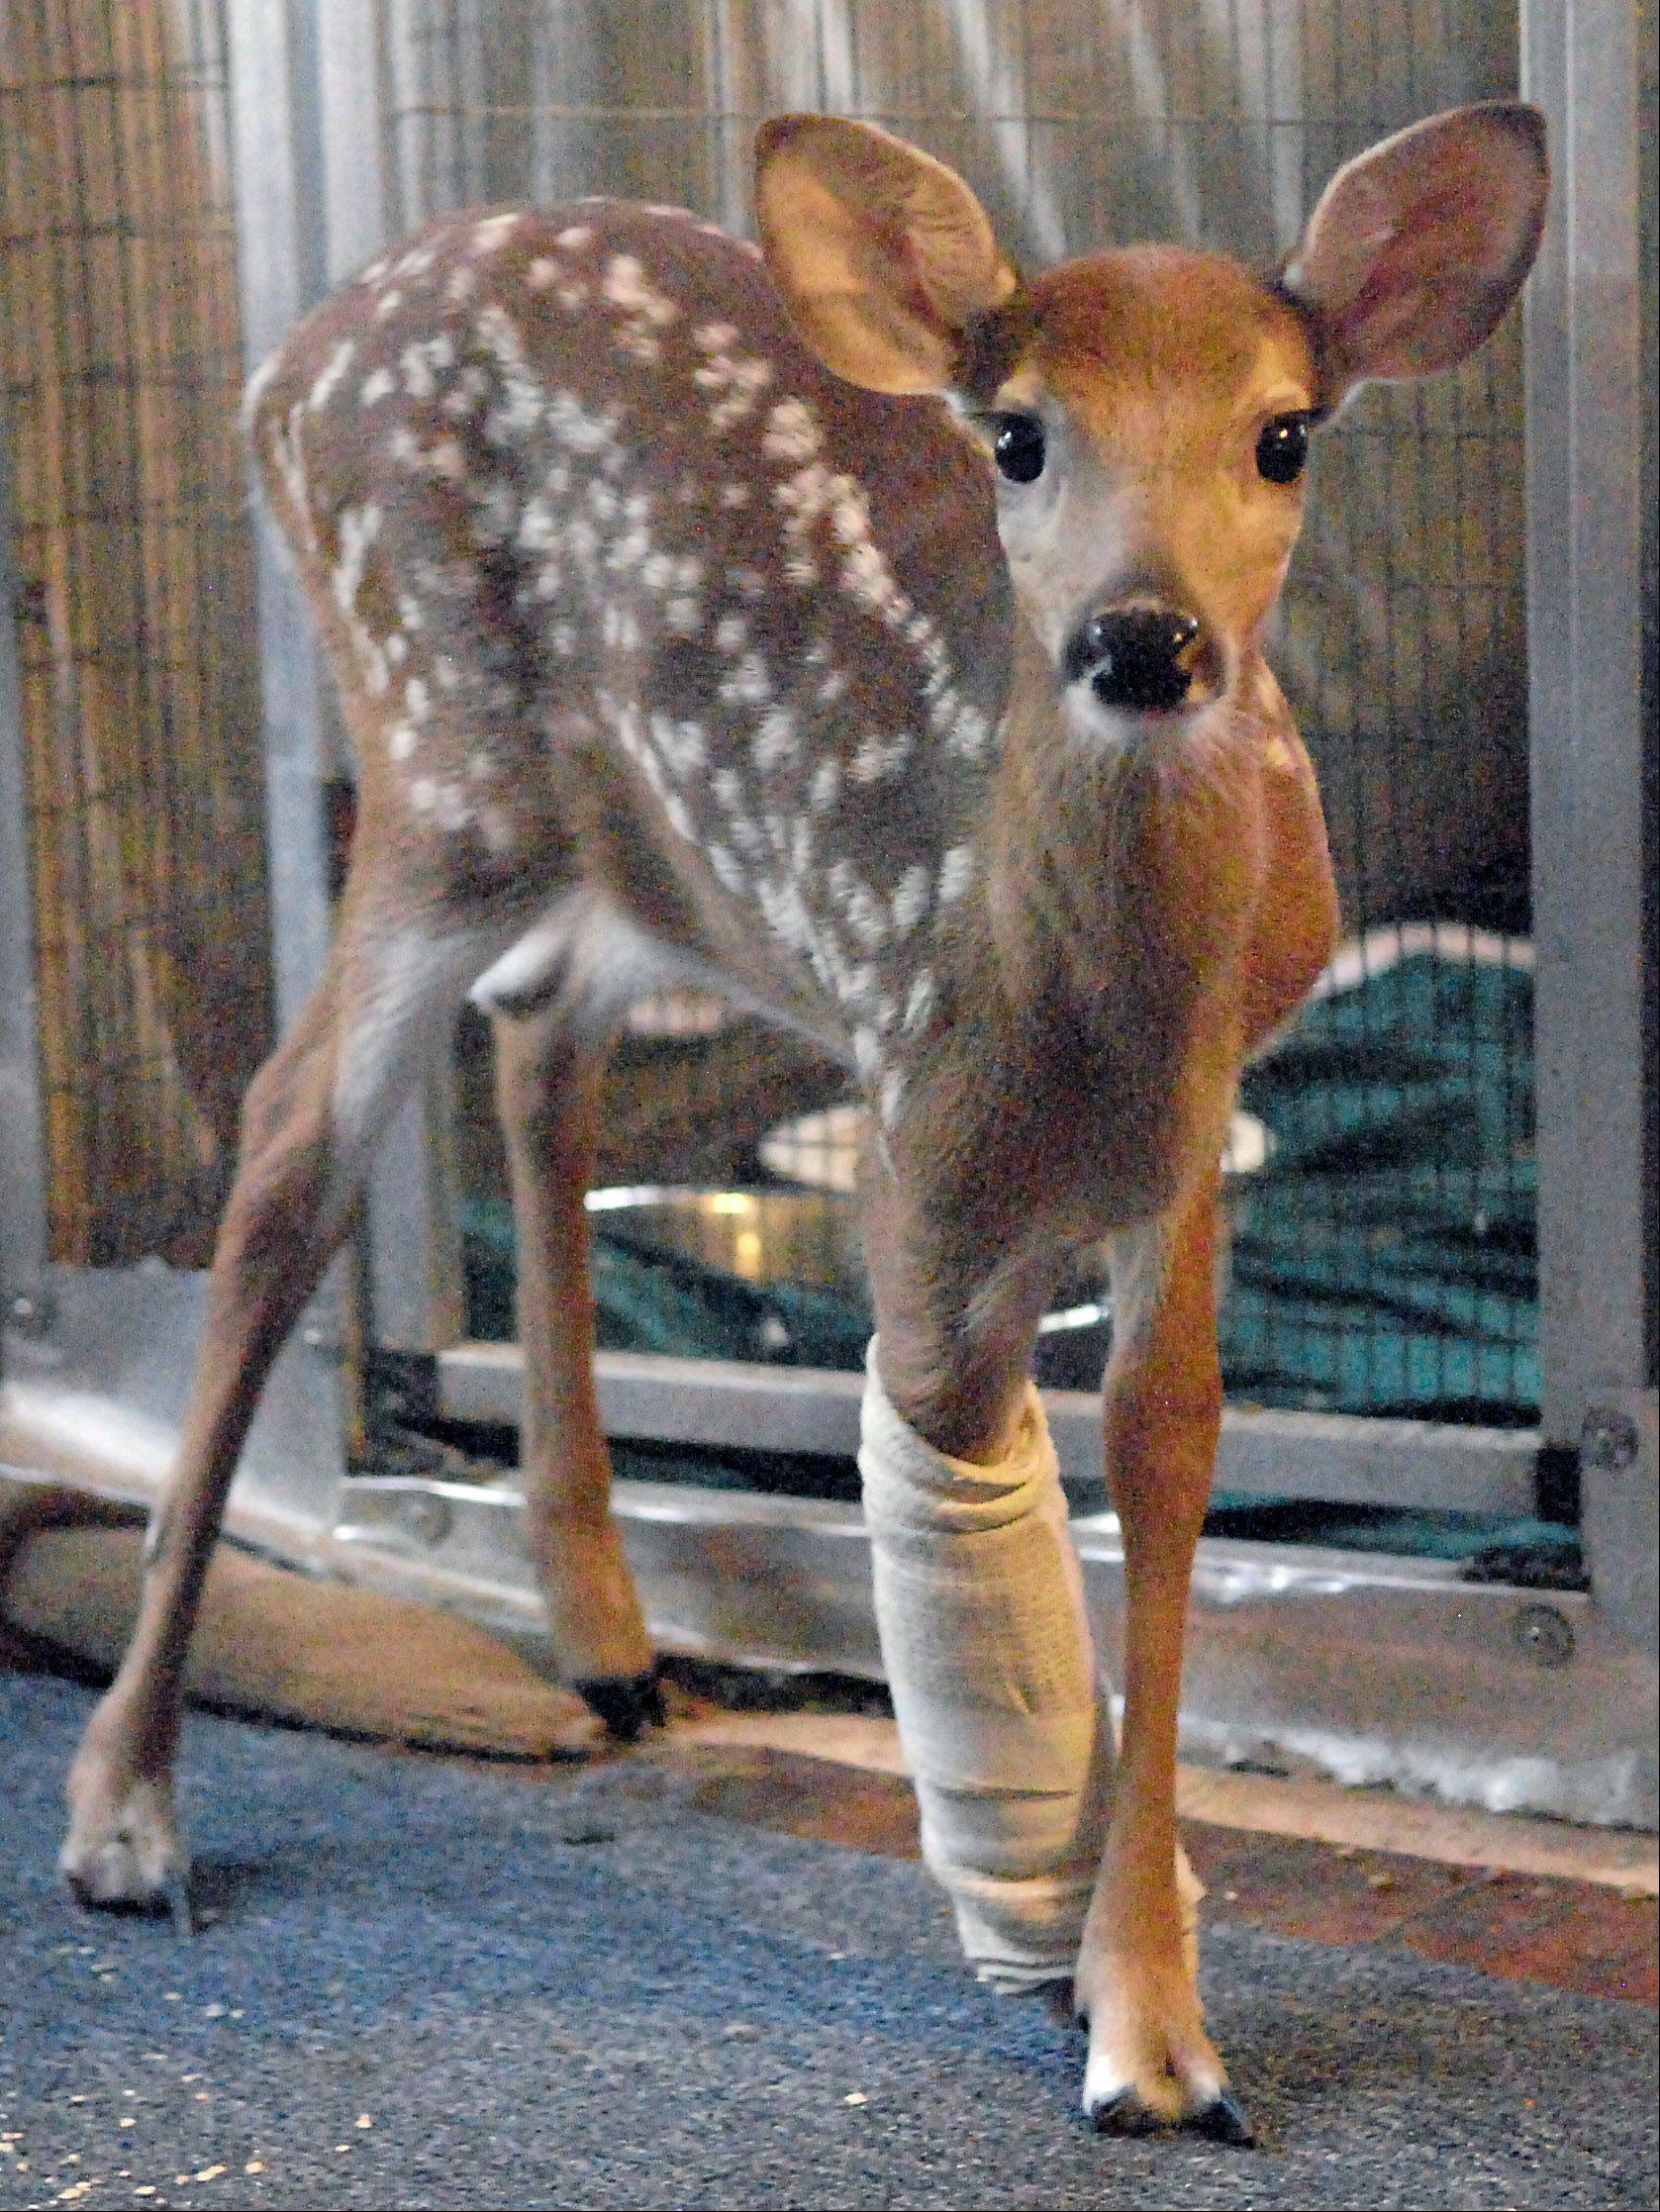 Franklin, a fawn about two months old, lost its leg from an accidental lawn mowing incident. It has been recovering from an initial surgery, soon to get another to fight a speeding infection, with the hopes of getting a prothesis made. A donator has already been in contact with the organization.